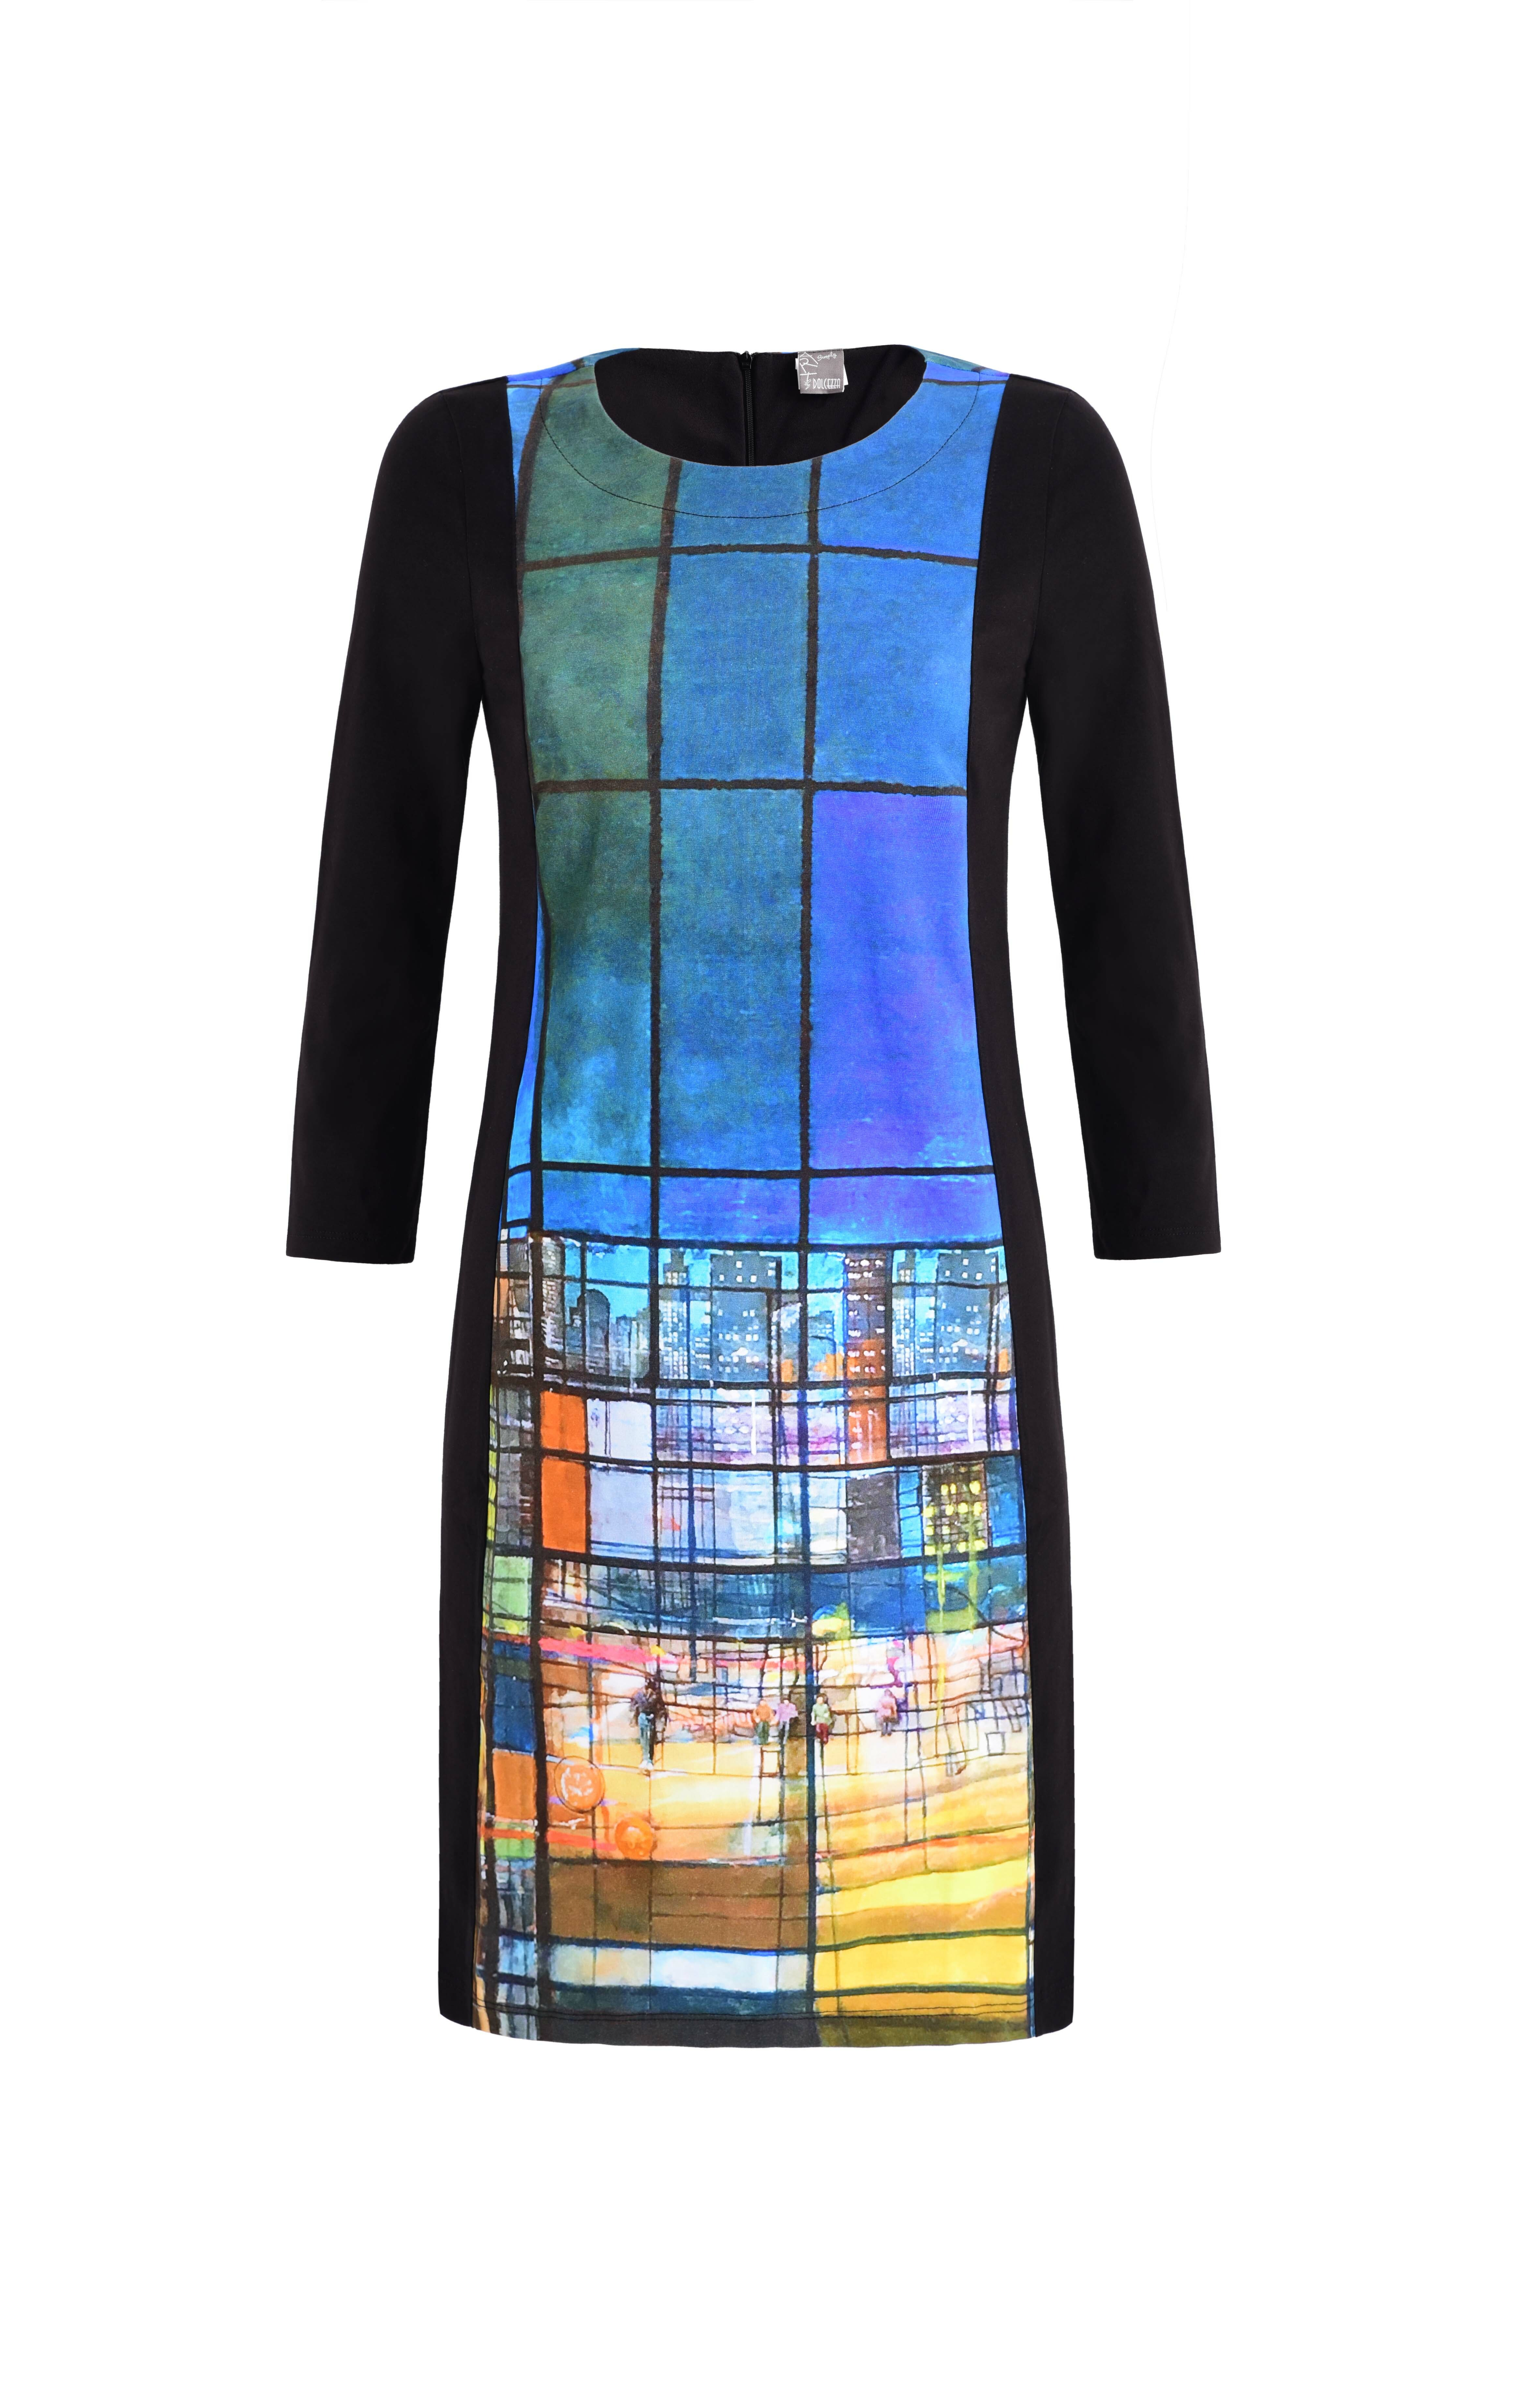 Simply Art Dolcezza: Colors Of Ville La Nuit Abstract Art Dress (2 Left!) Dolcezza_SimplyArt_59714